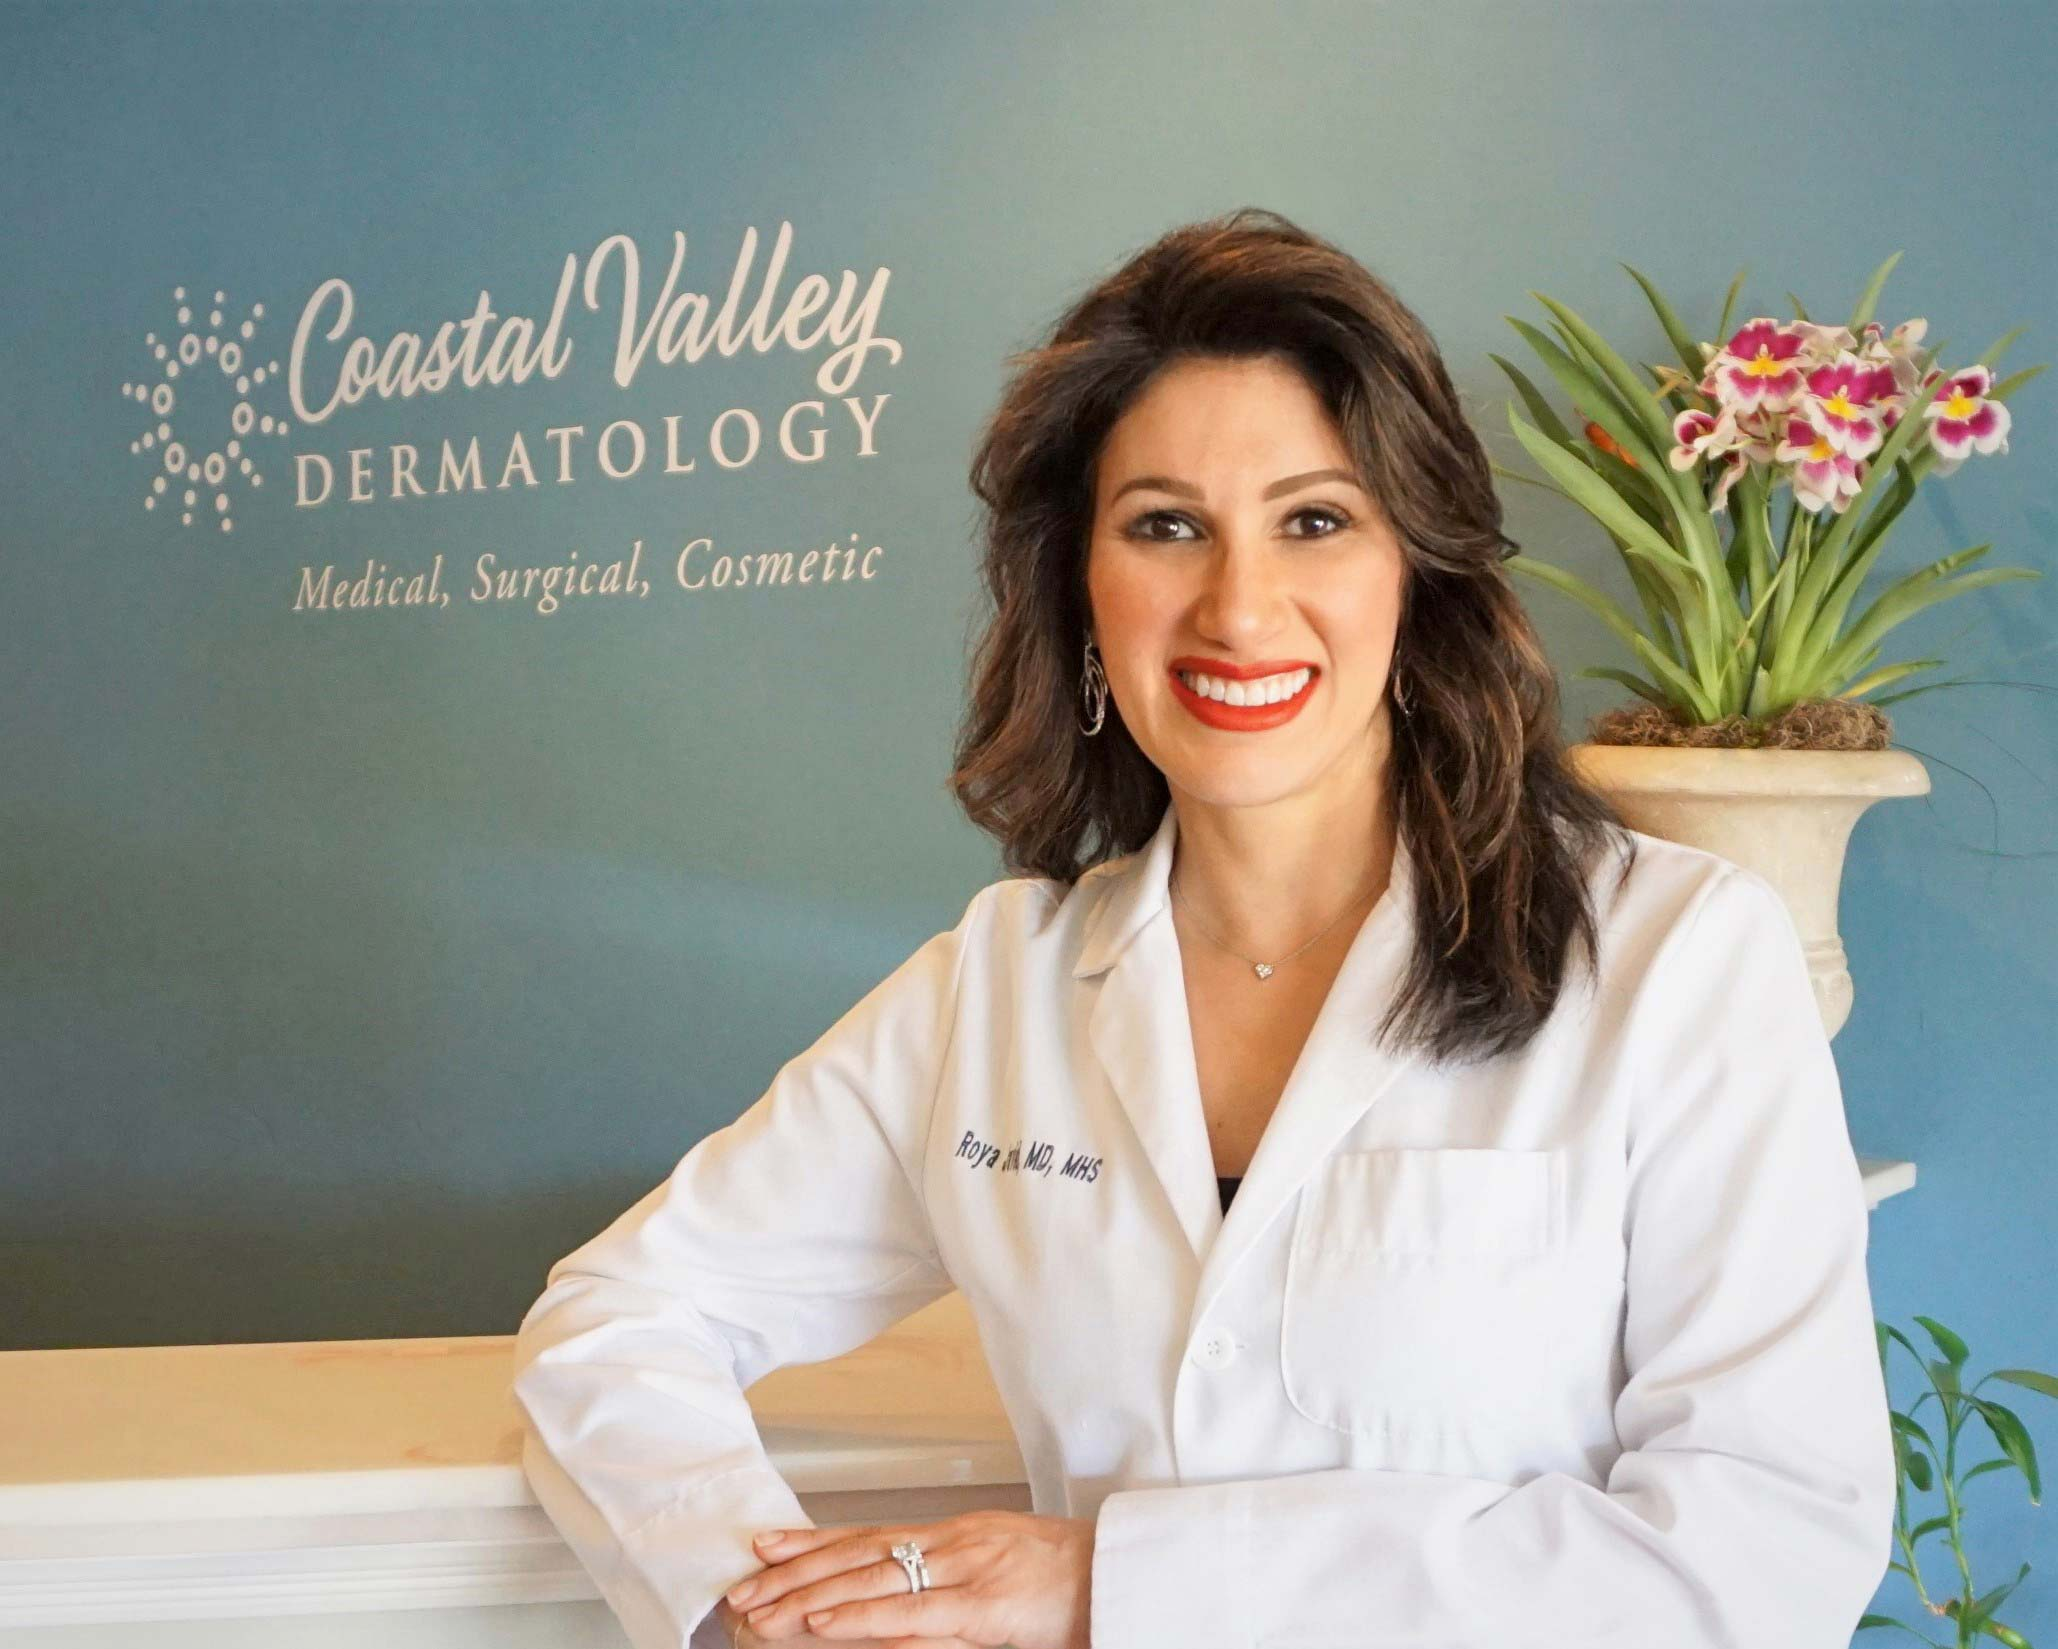 coastal-valley-dermatology-carmel-dermatologist-roya-javid-md-photo